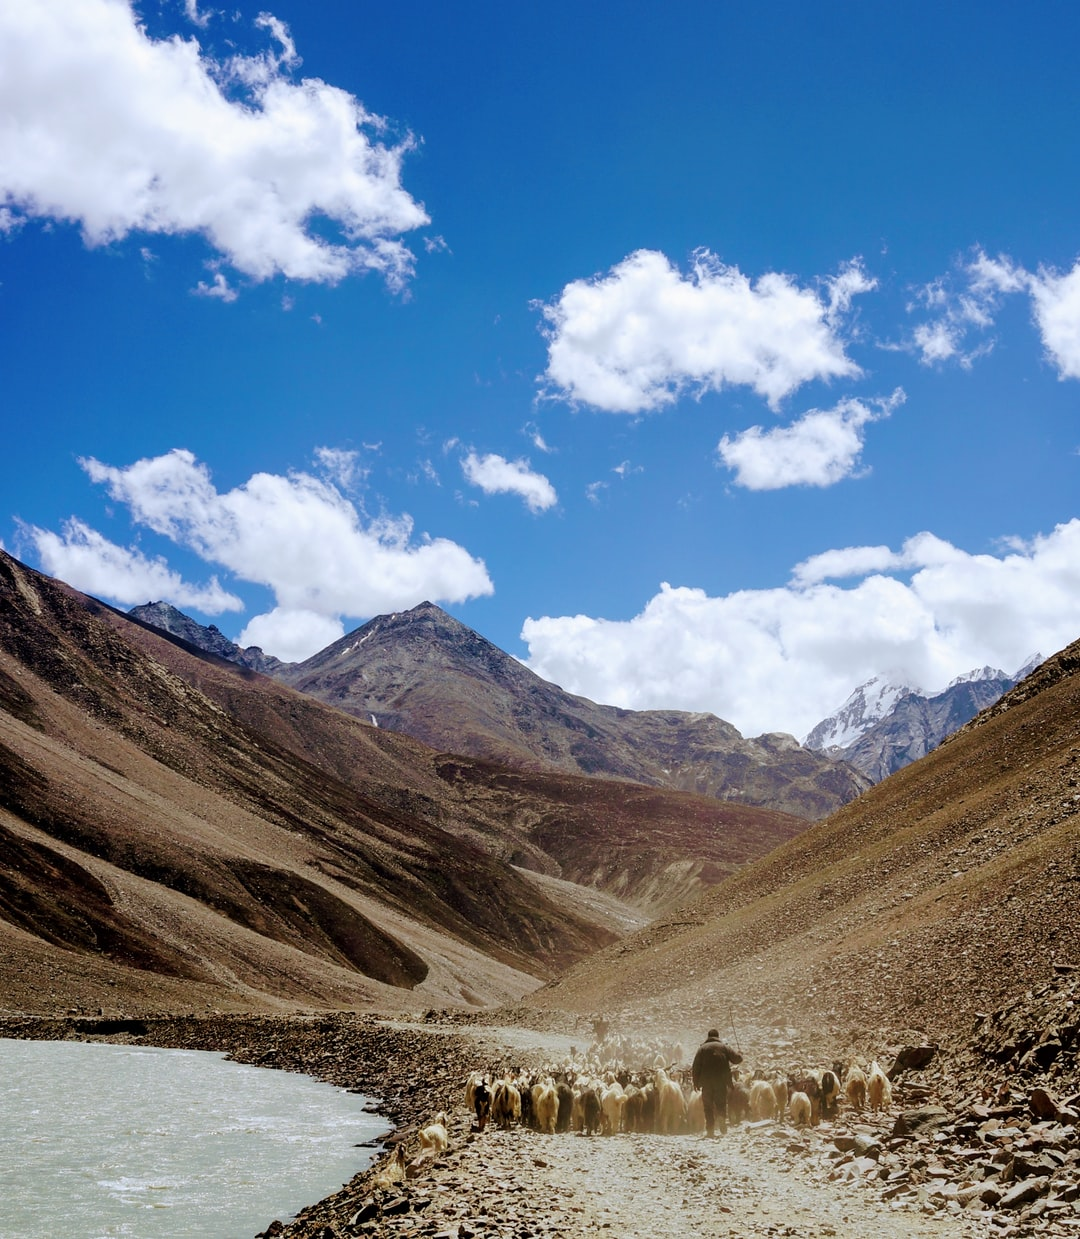 Caught this shot while trekking in the Spiti Valley of northern India. The herd was covering the entire road.